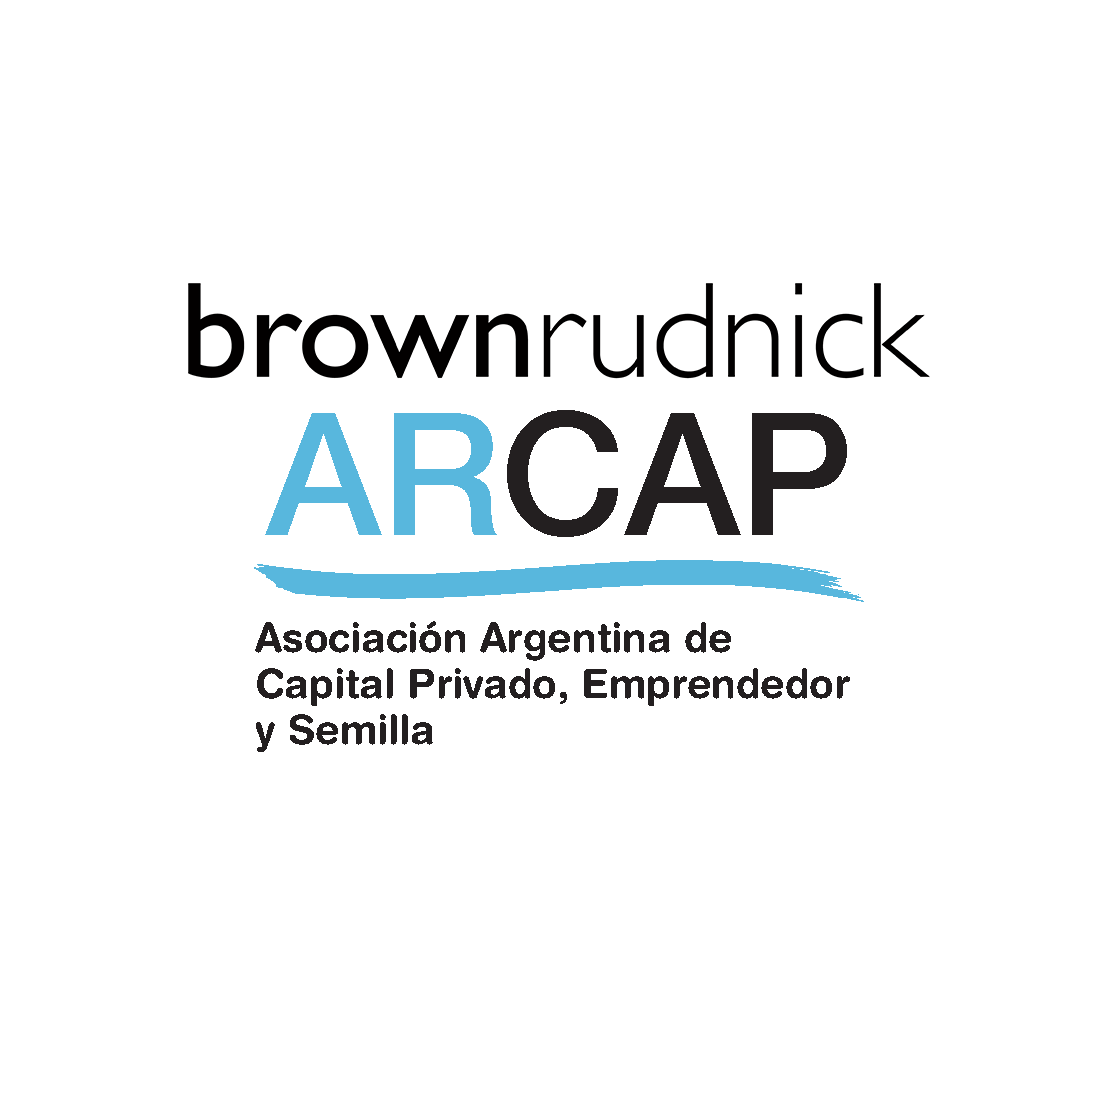 Brown Rudnick-ARCAP